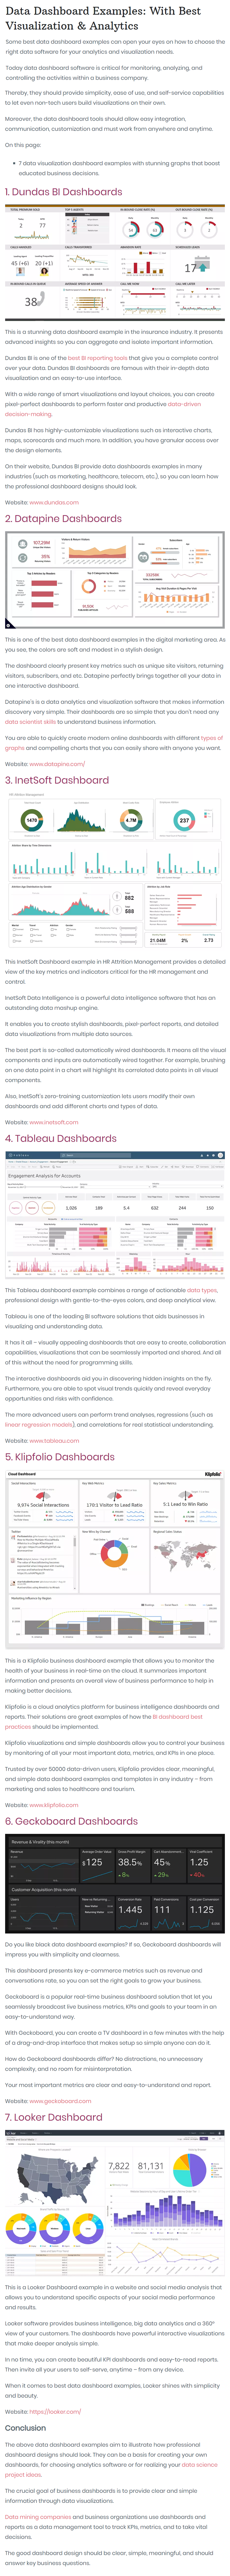 data dashboard examples